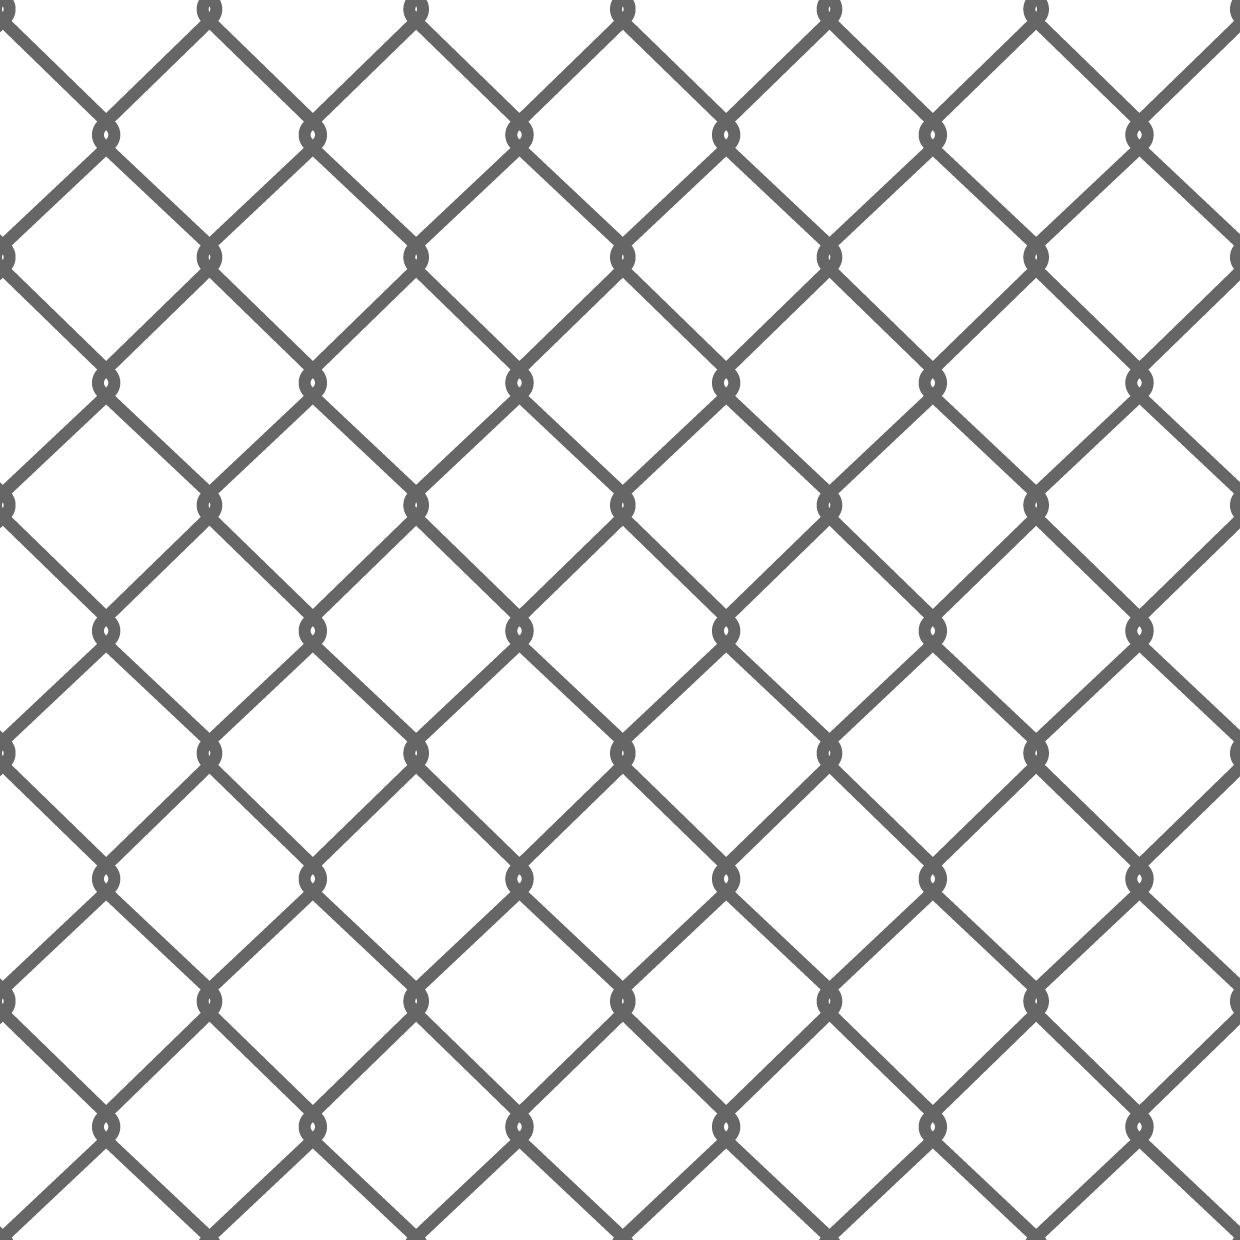 Steel net png. Wire fence xbrl us